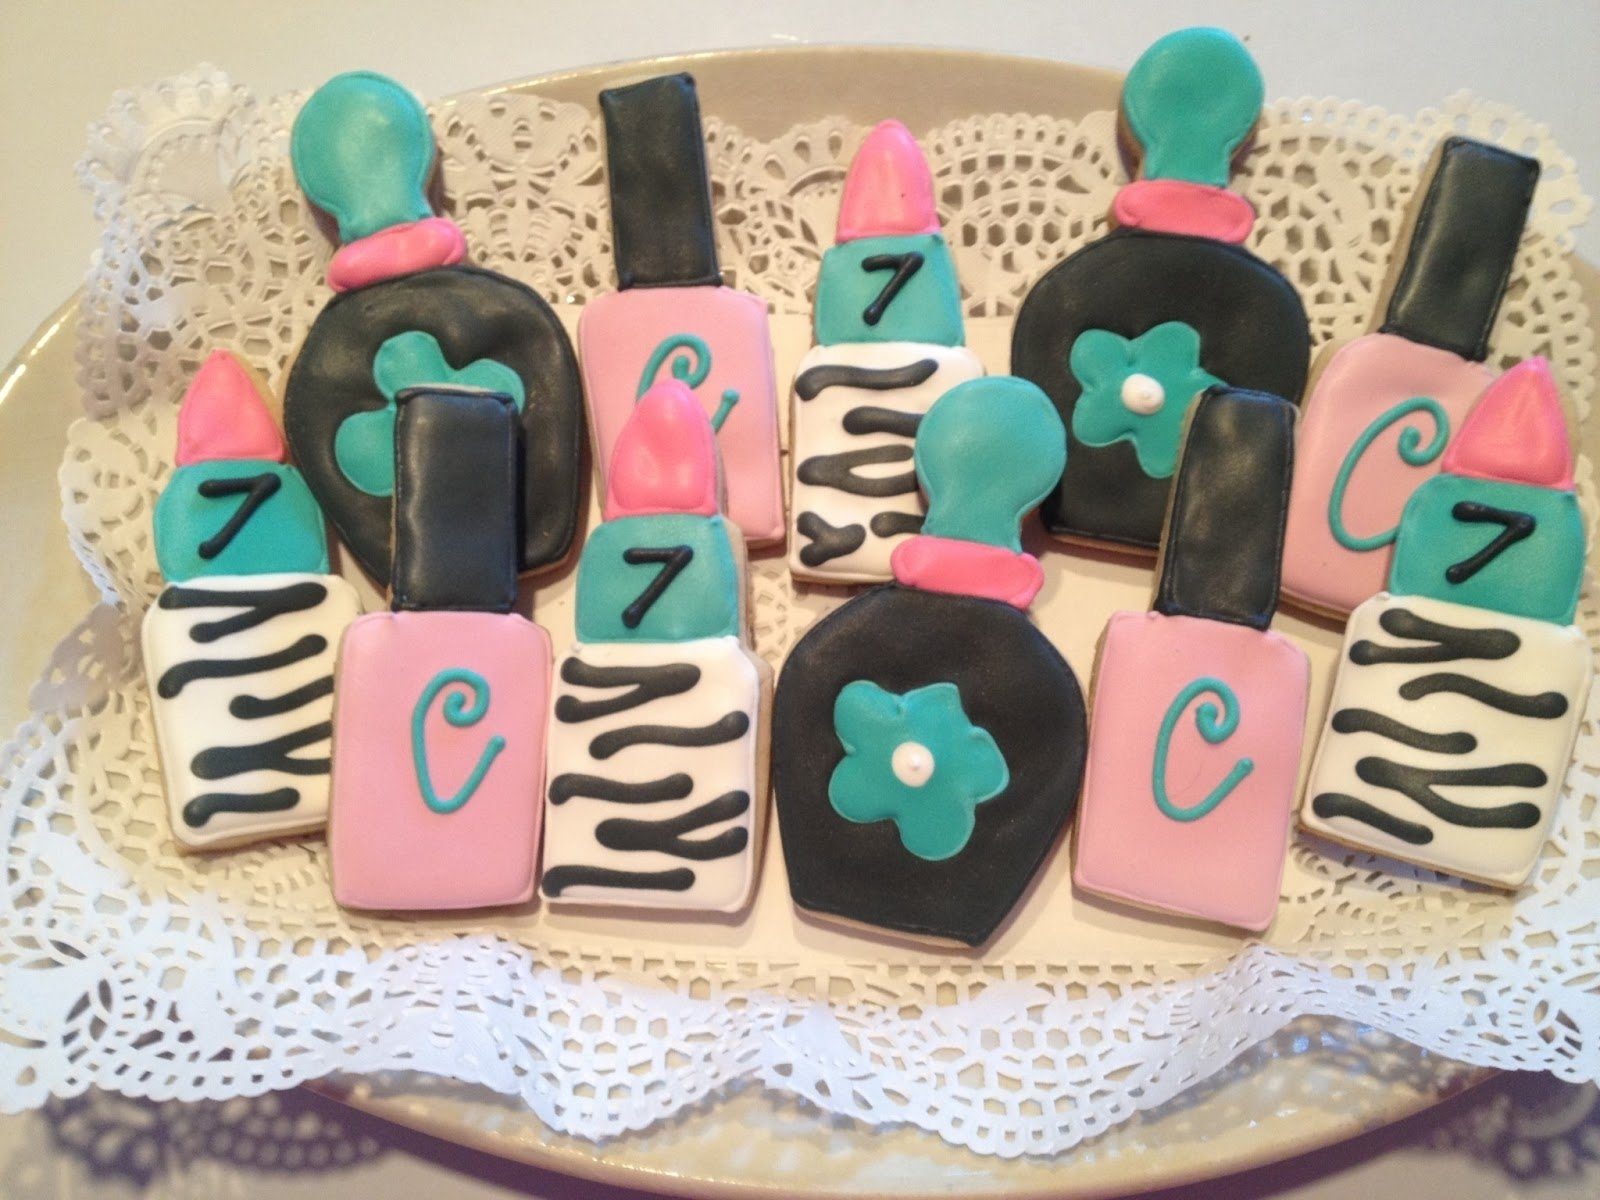 10 Spectacular Birthday Party Ideas For 13 Year Old Girl one preppy cookie spa birthday party cookies 1 2020